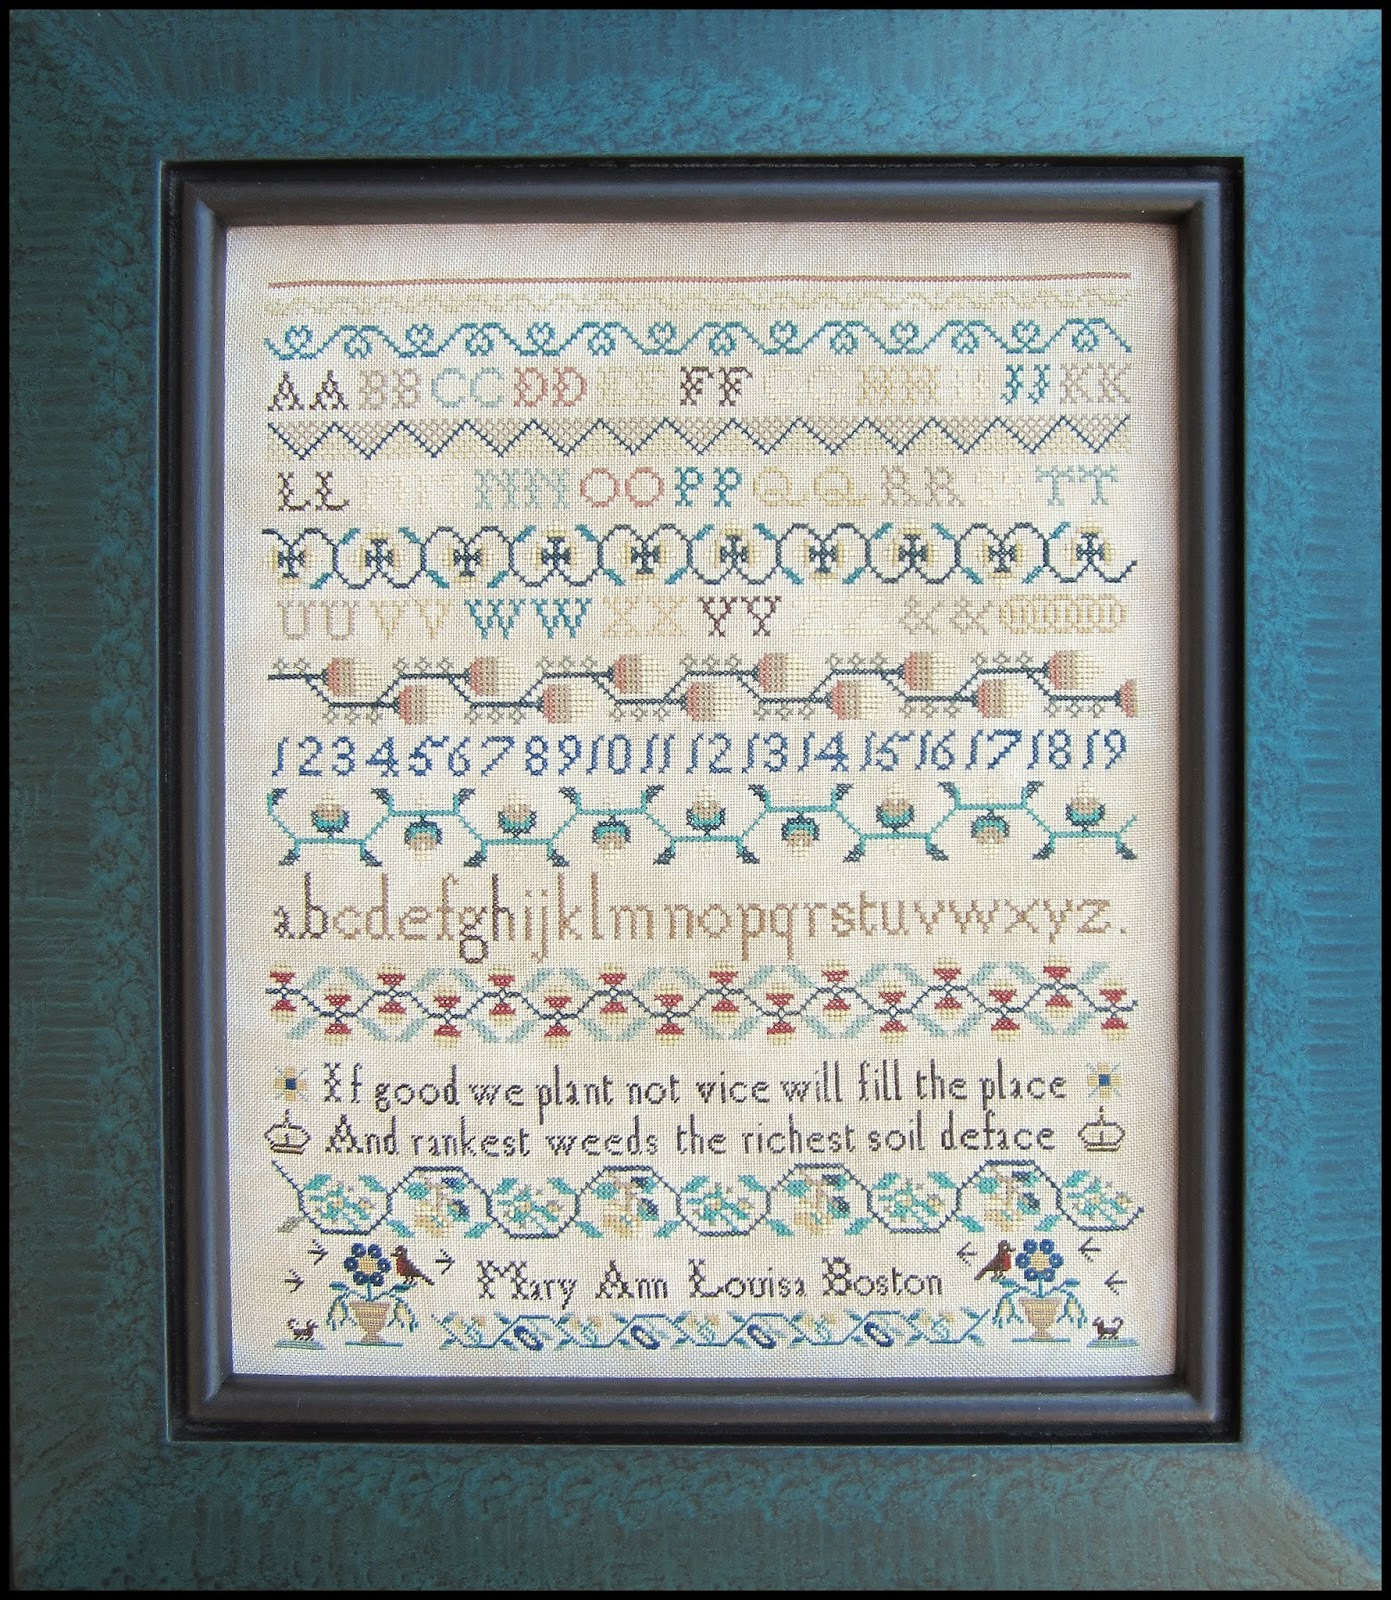 Primary image for Mary Ann Louisa Boston sampler cross stitch chart The Scarlett House